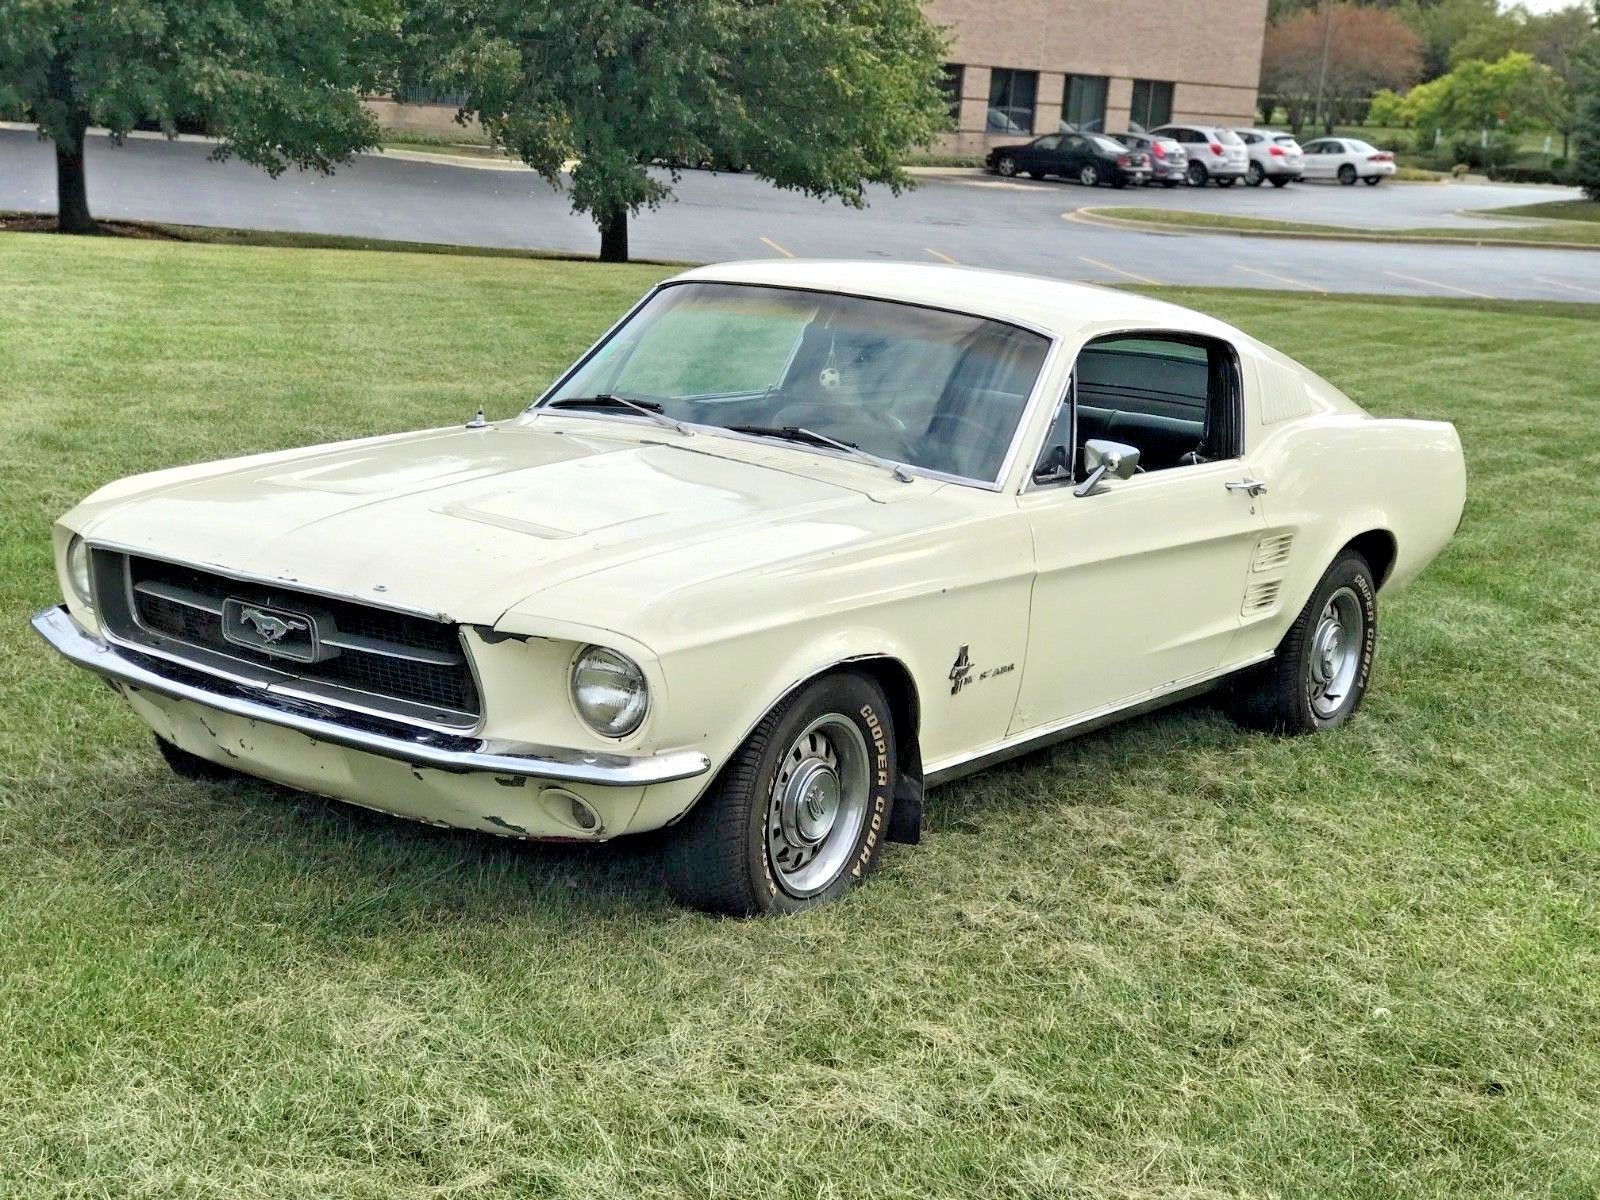 Ebay 1967 ford mustang 1967 ford mustang fastback 1 owner c code 289 wimbledon white black interior fordmustang ford